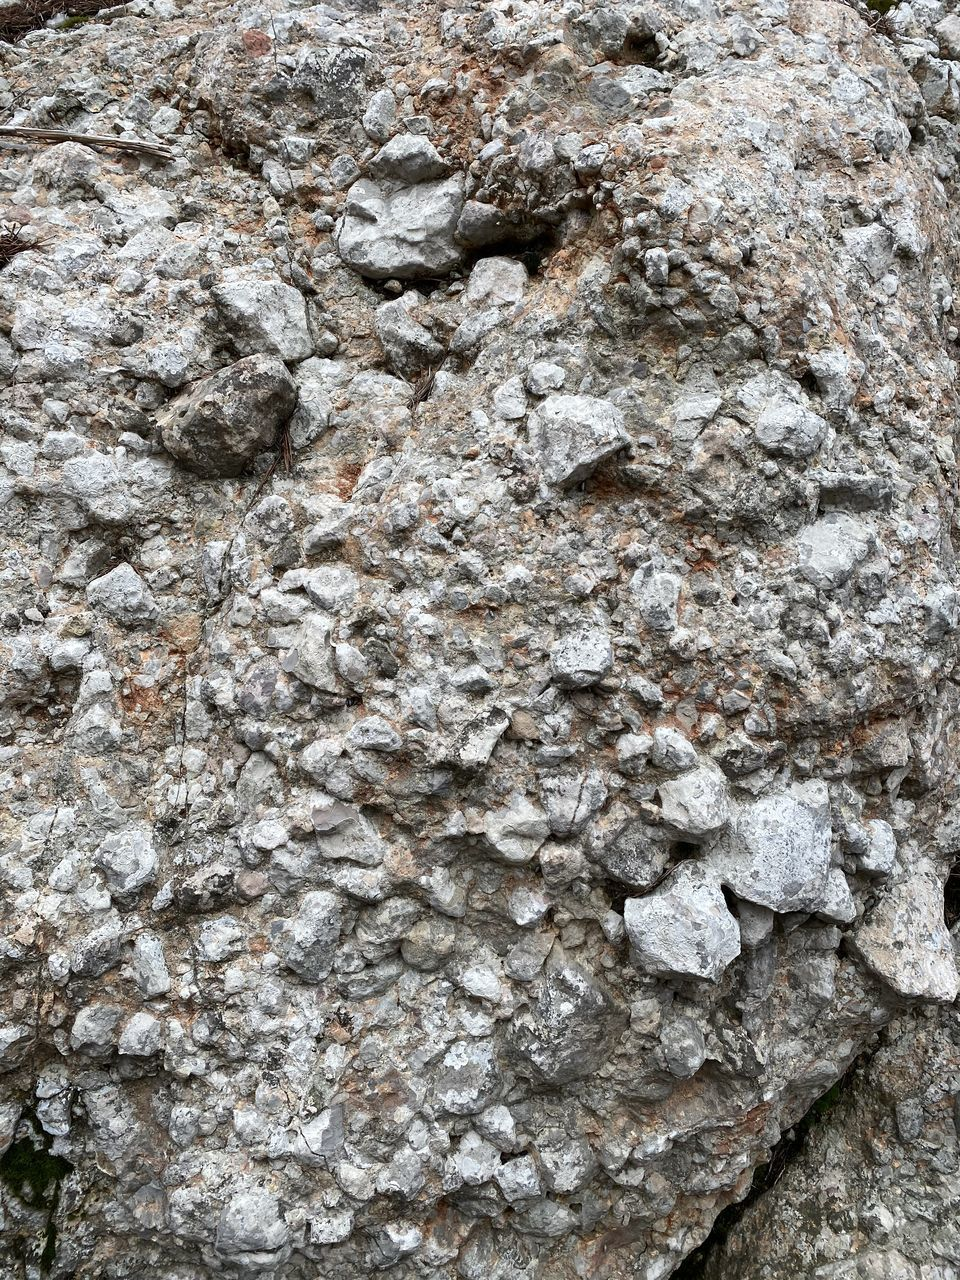 rock, solid, close-up, rock - object, backgrounds, full frame, no people, textured, nature, day, natural pattern, outdoors, representation, animal, rough, gray, pattern, tree, tree trunk, animal themes, marine